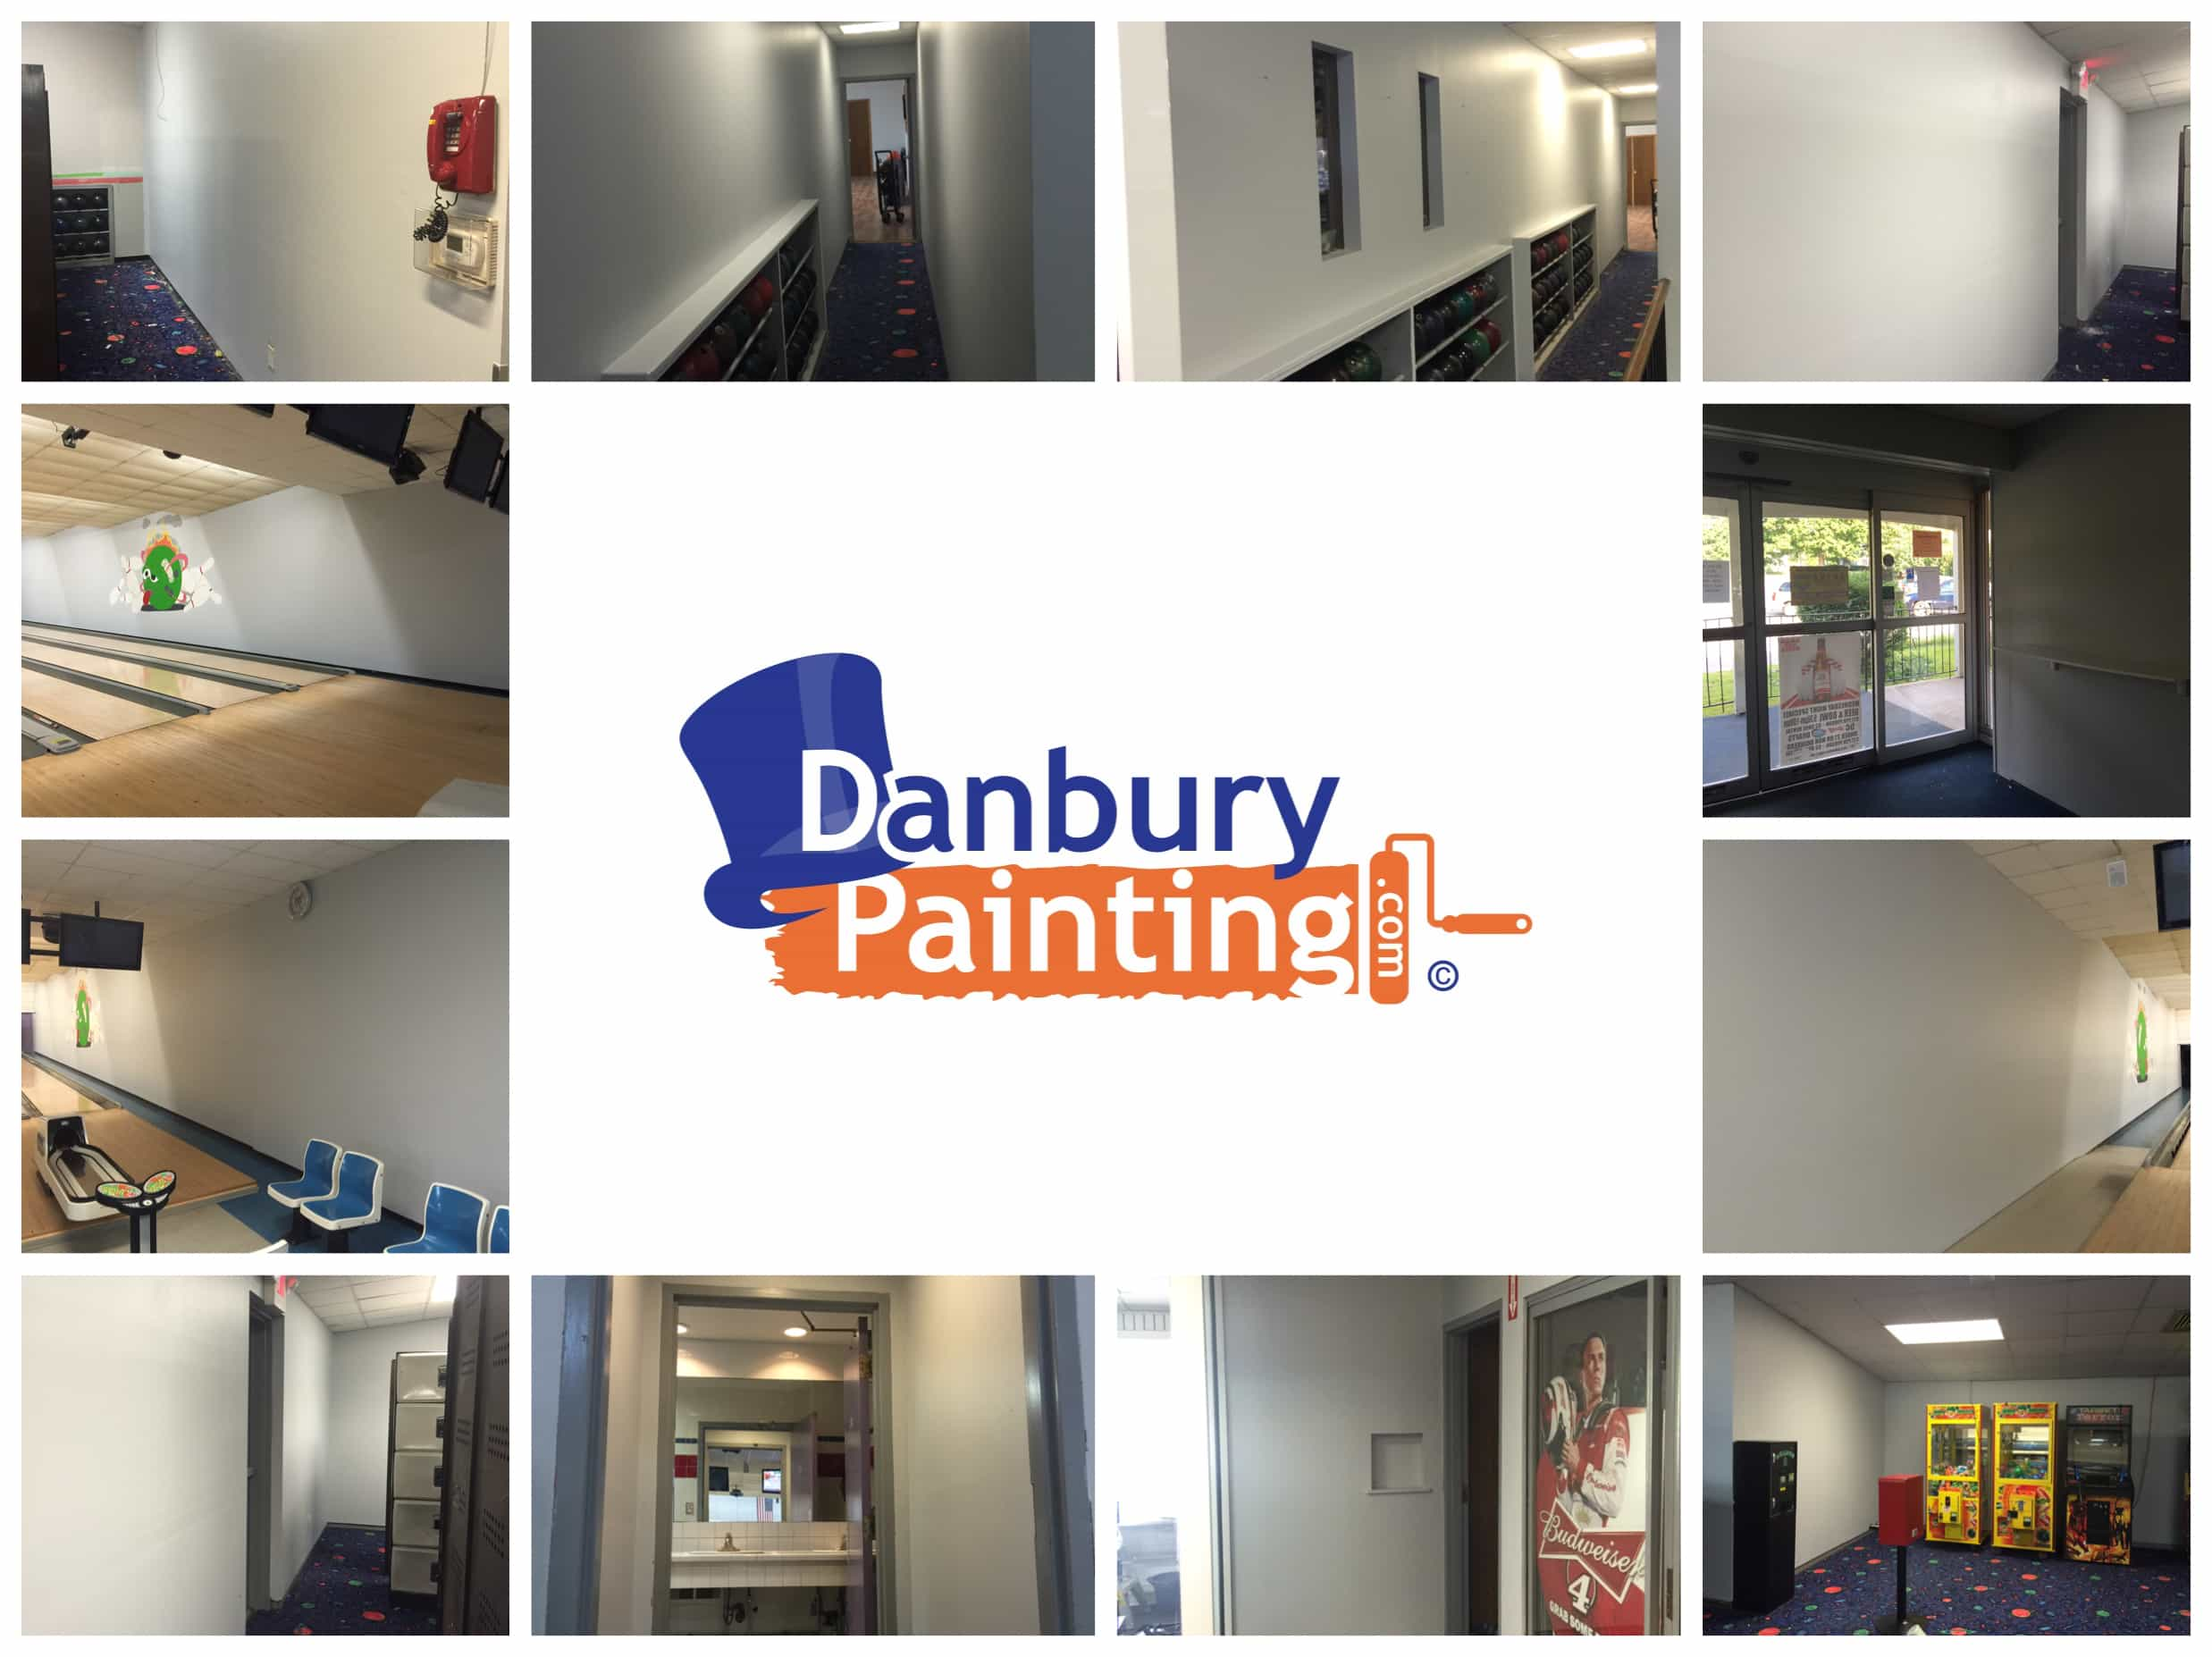 Commercial Painting Danbury Ct